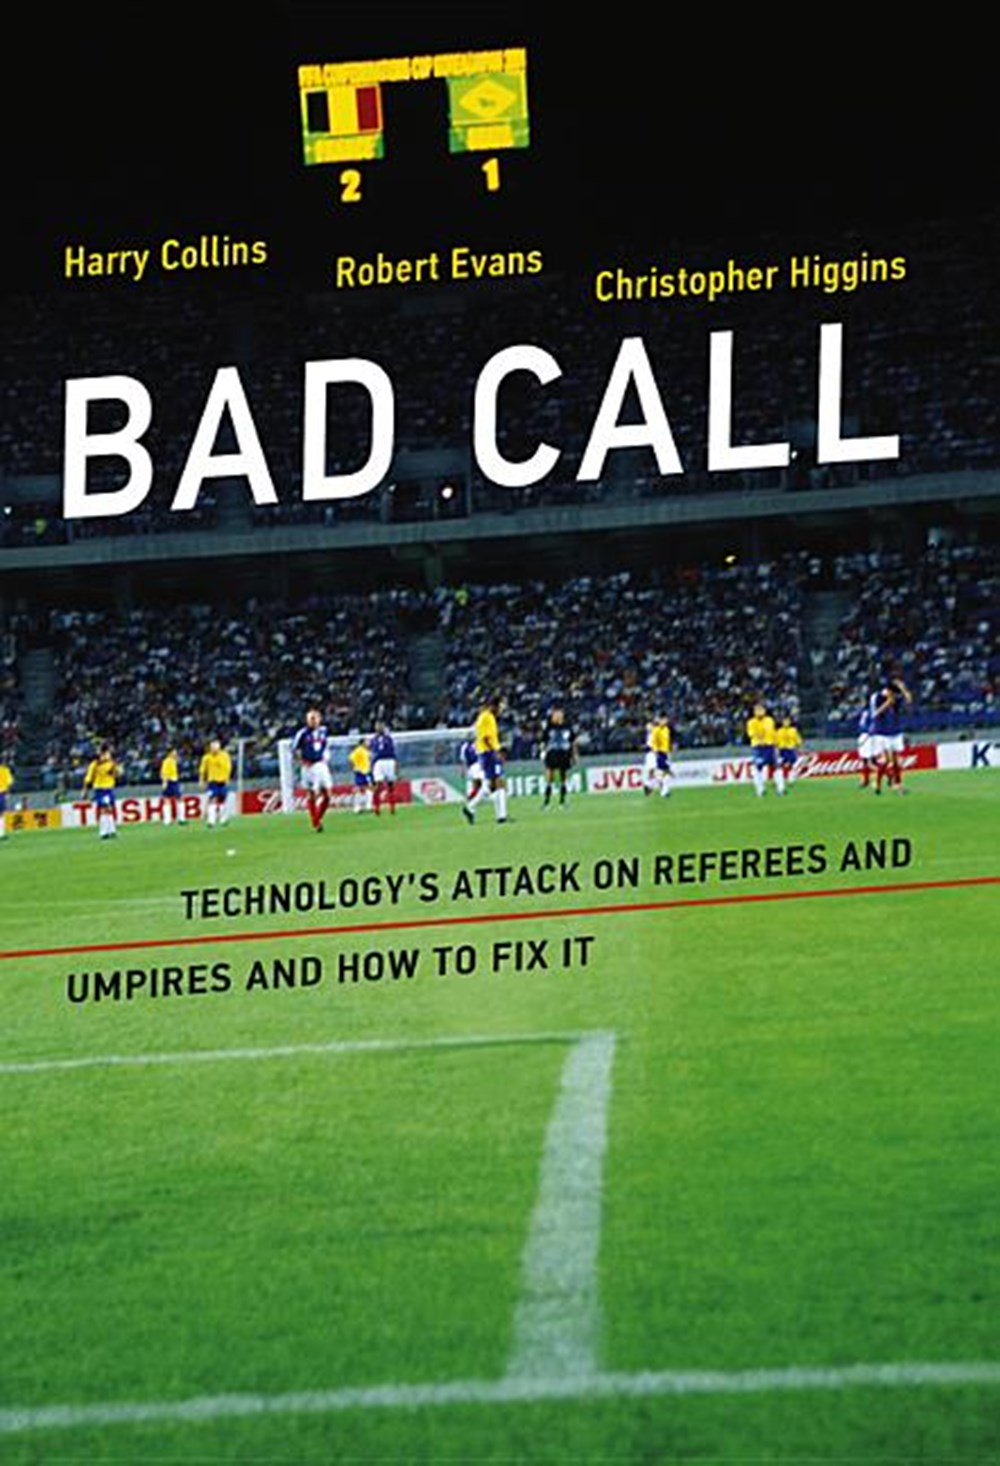 Bad Call Technology's Attack on Referees and Umpires and How to Fix It